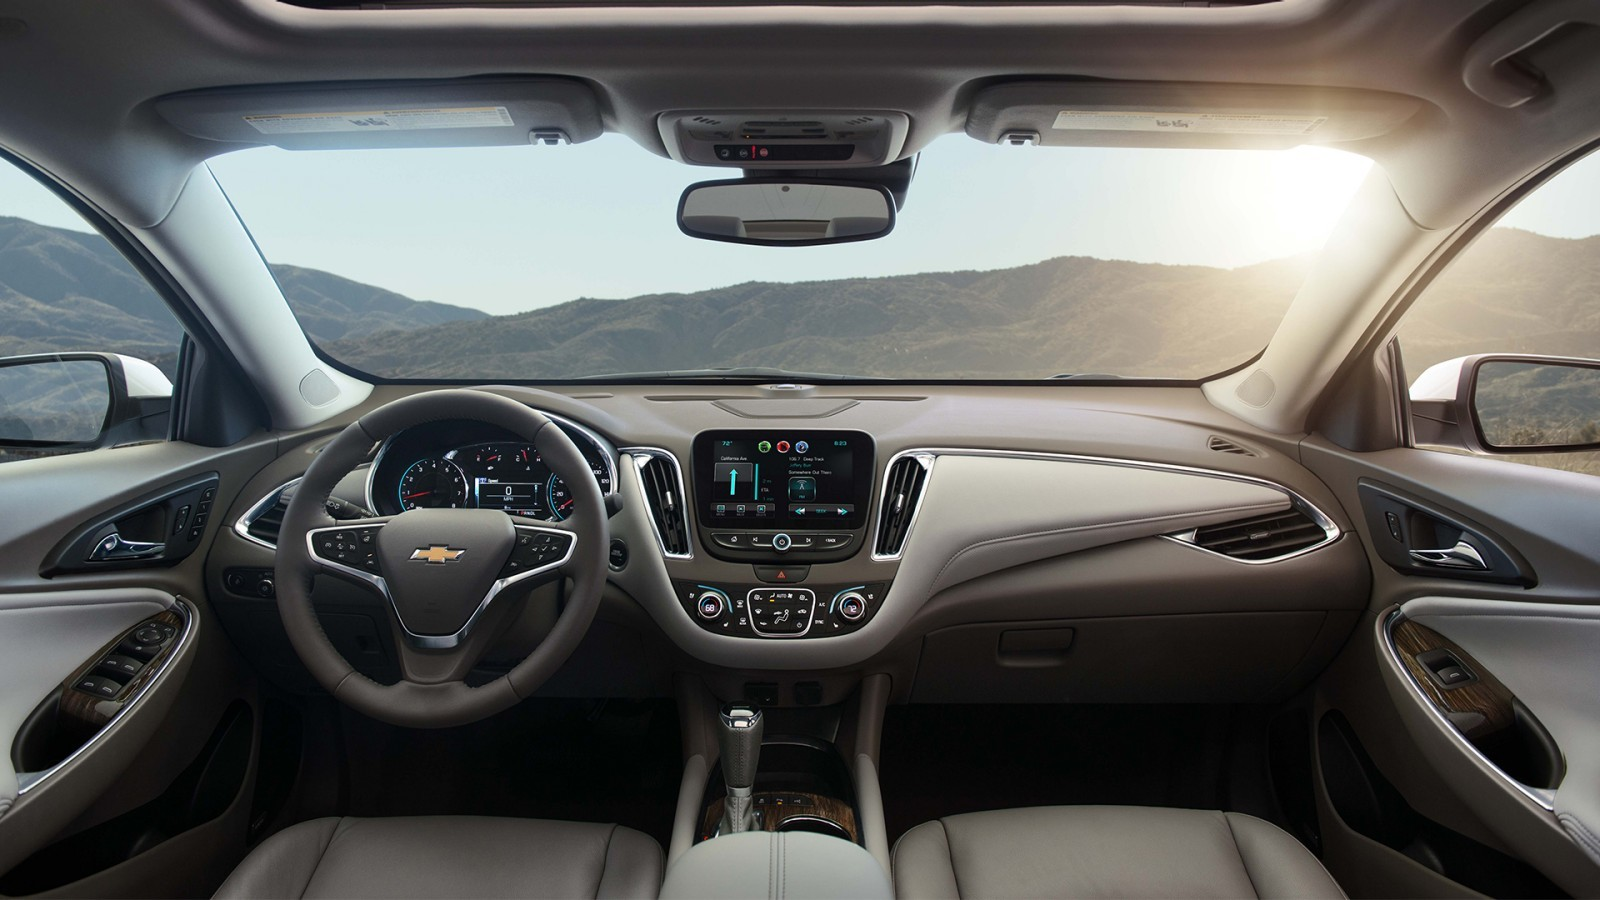 Interior of the 2016 Chevy Malibu